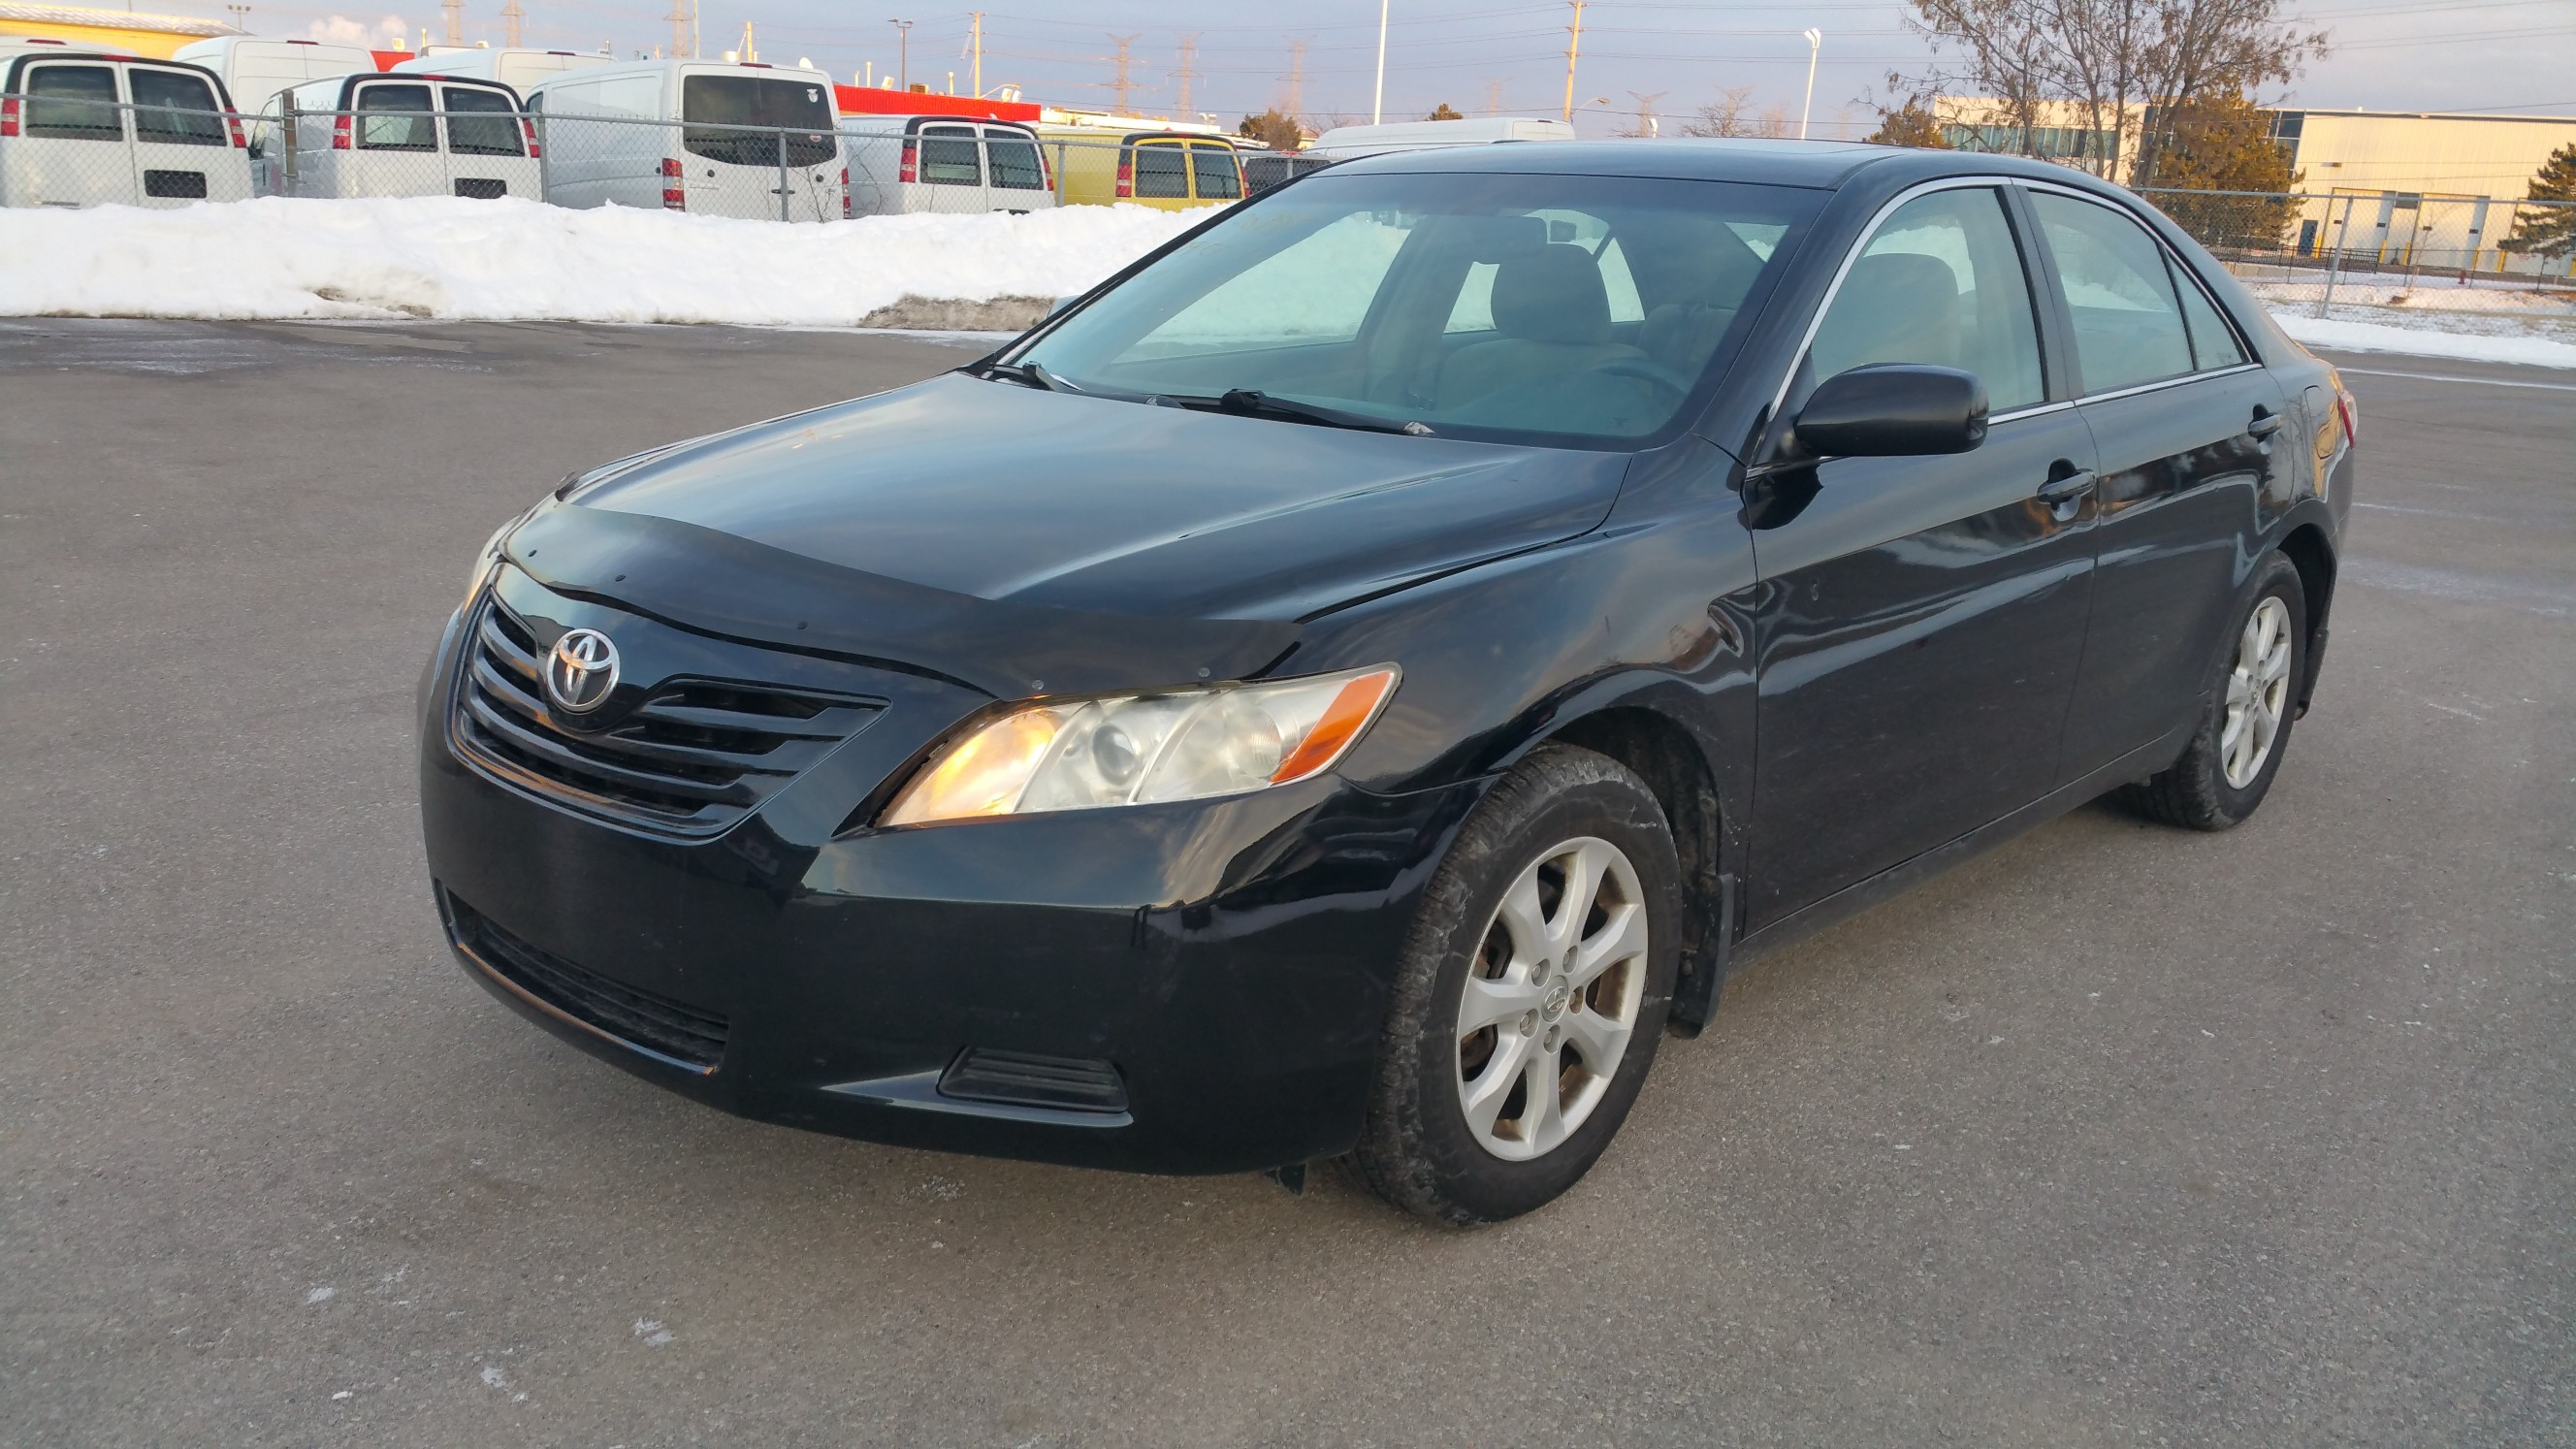 in chilliwack le camry toyota fwd car used owned inventory pre